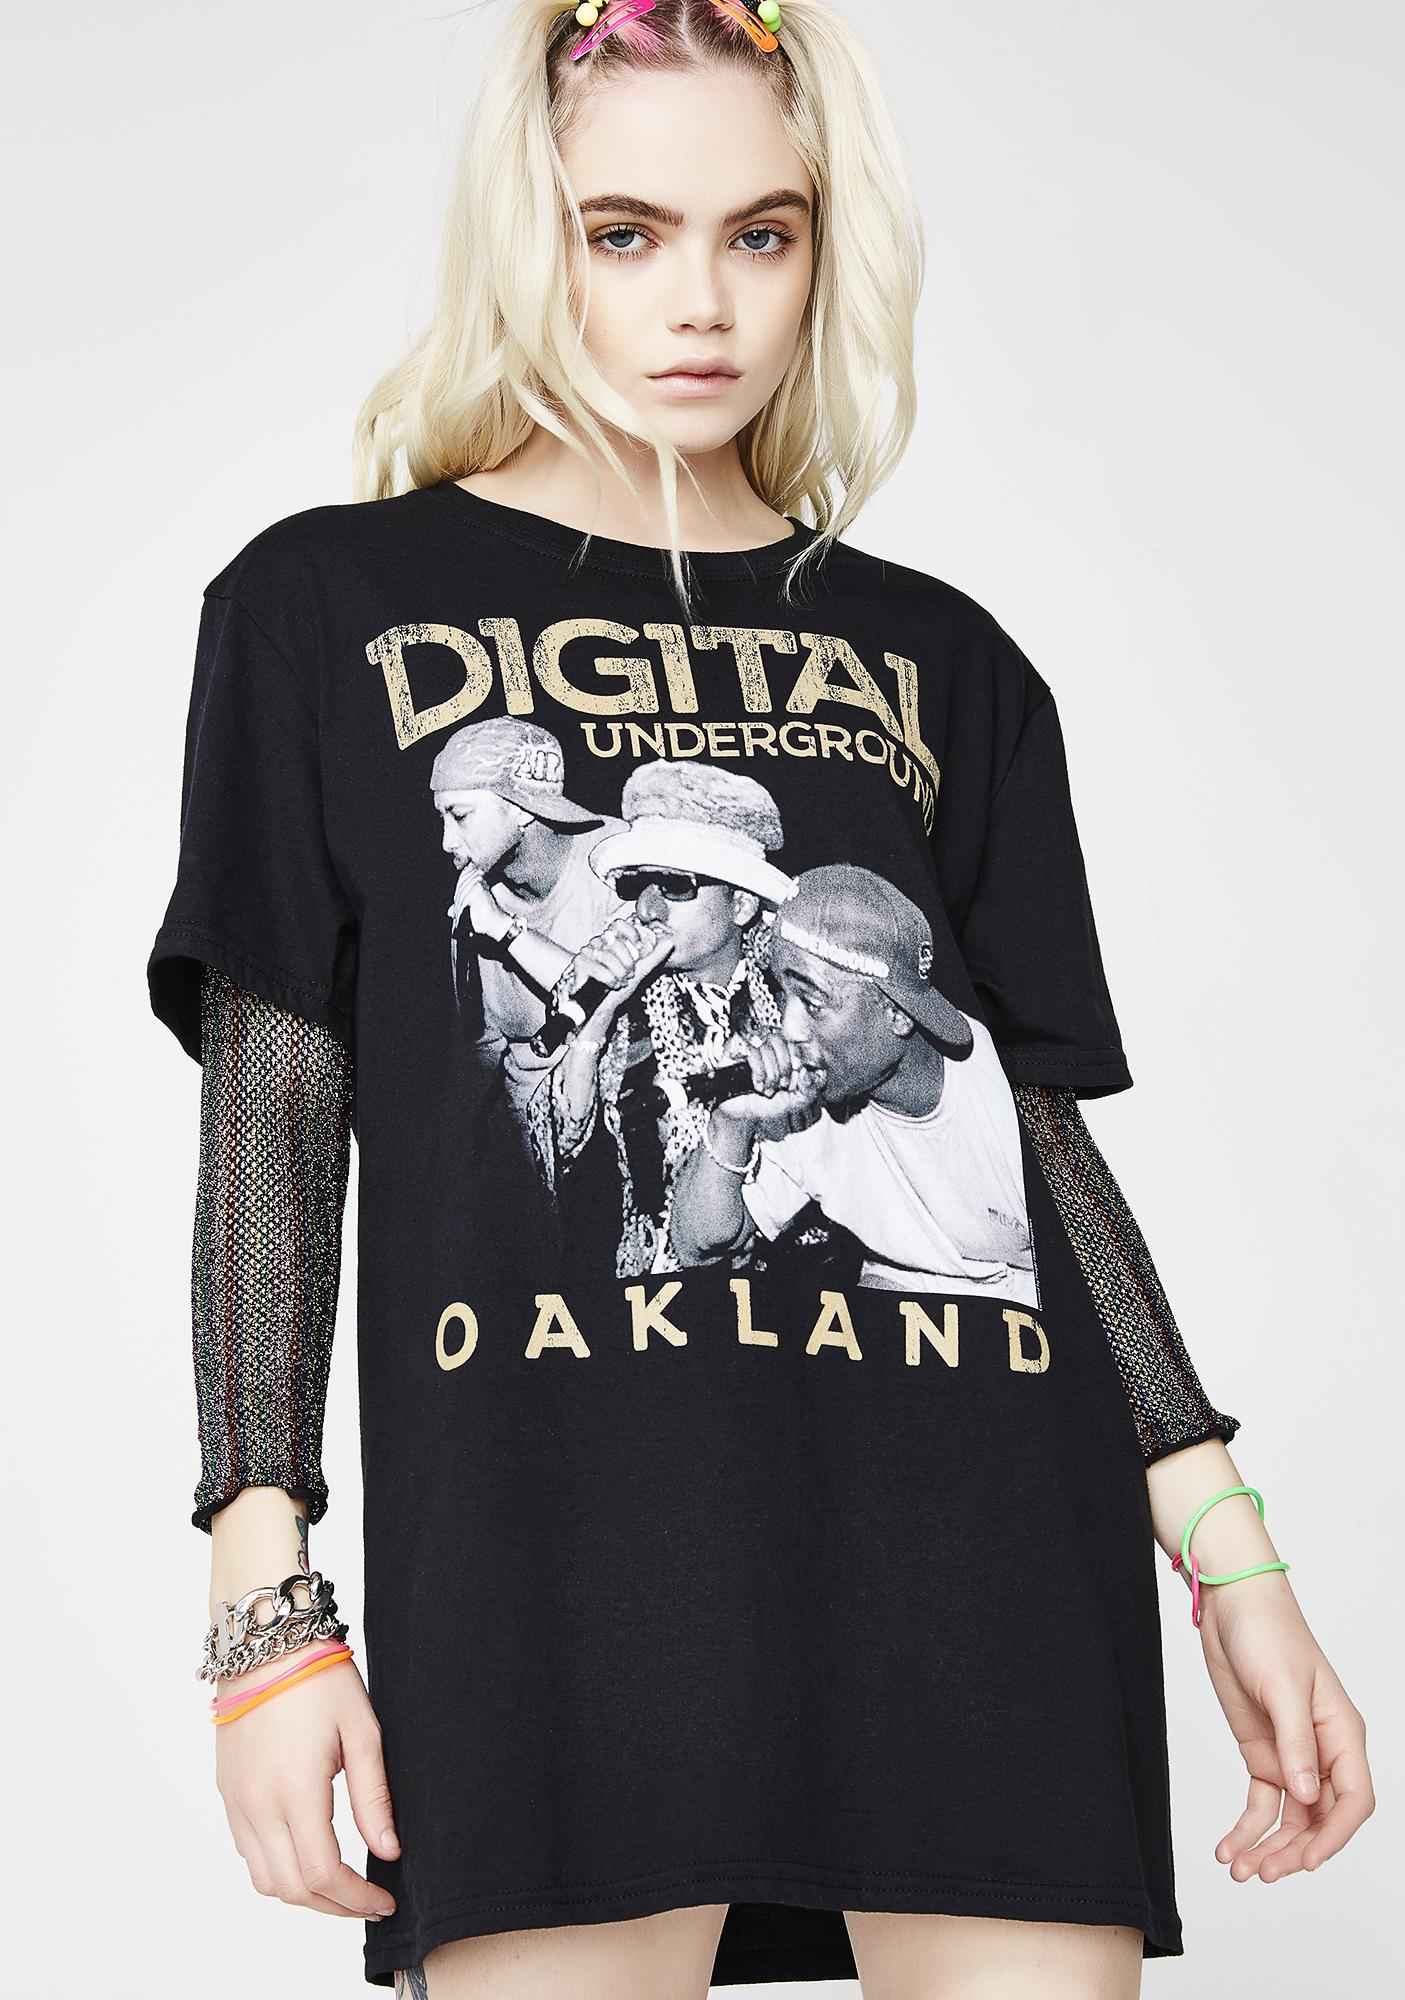 Digital Underground Graphic Tee